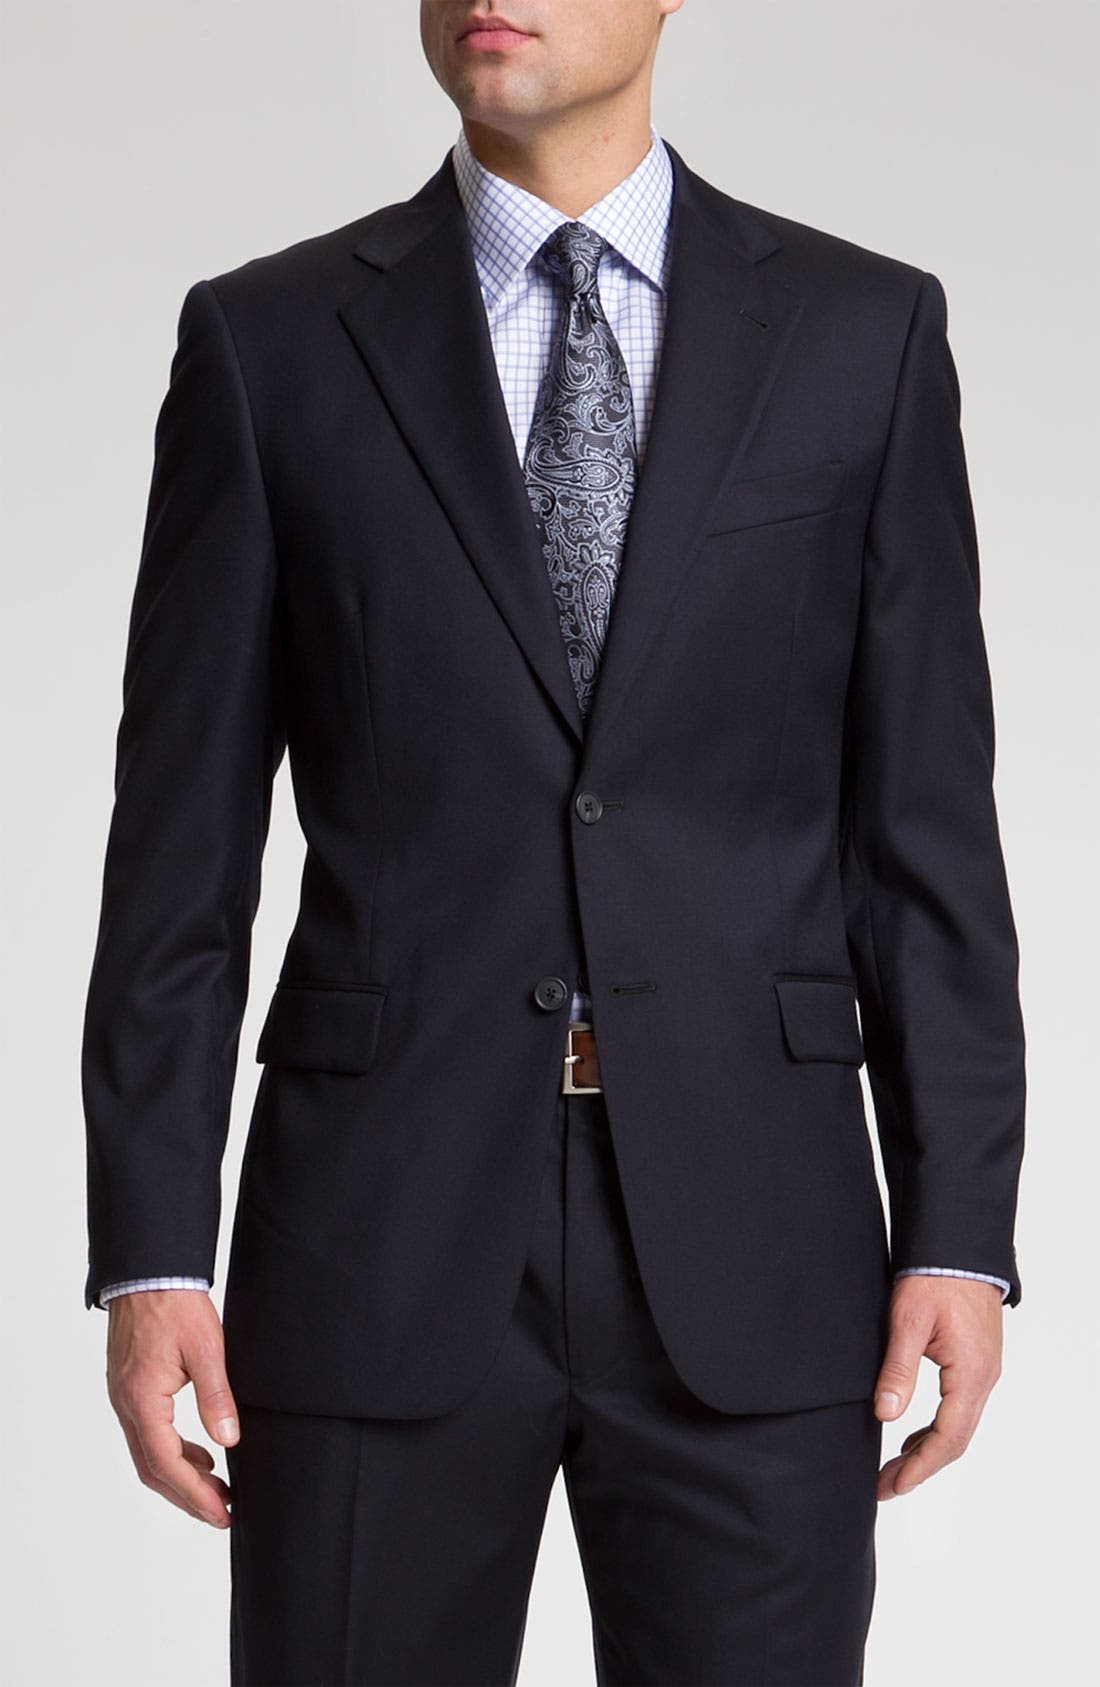 Alternate Image 1 Selected - Joseph Abboud 'Signature Silver' Navy Wool Suit